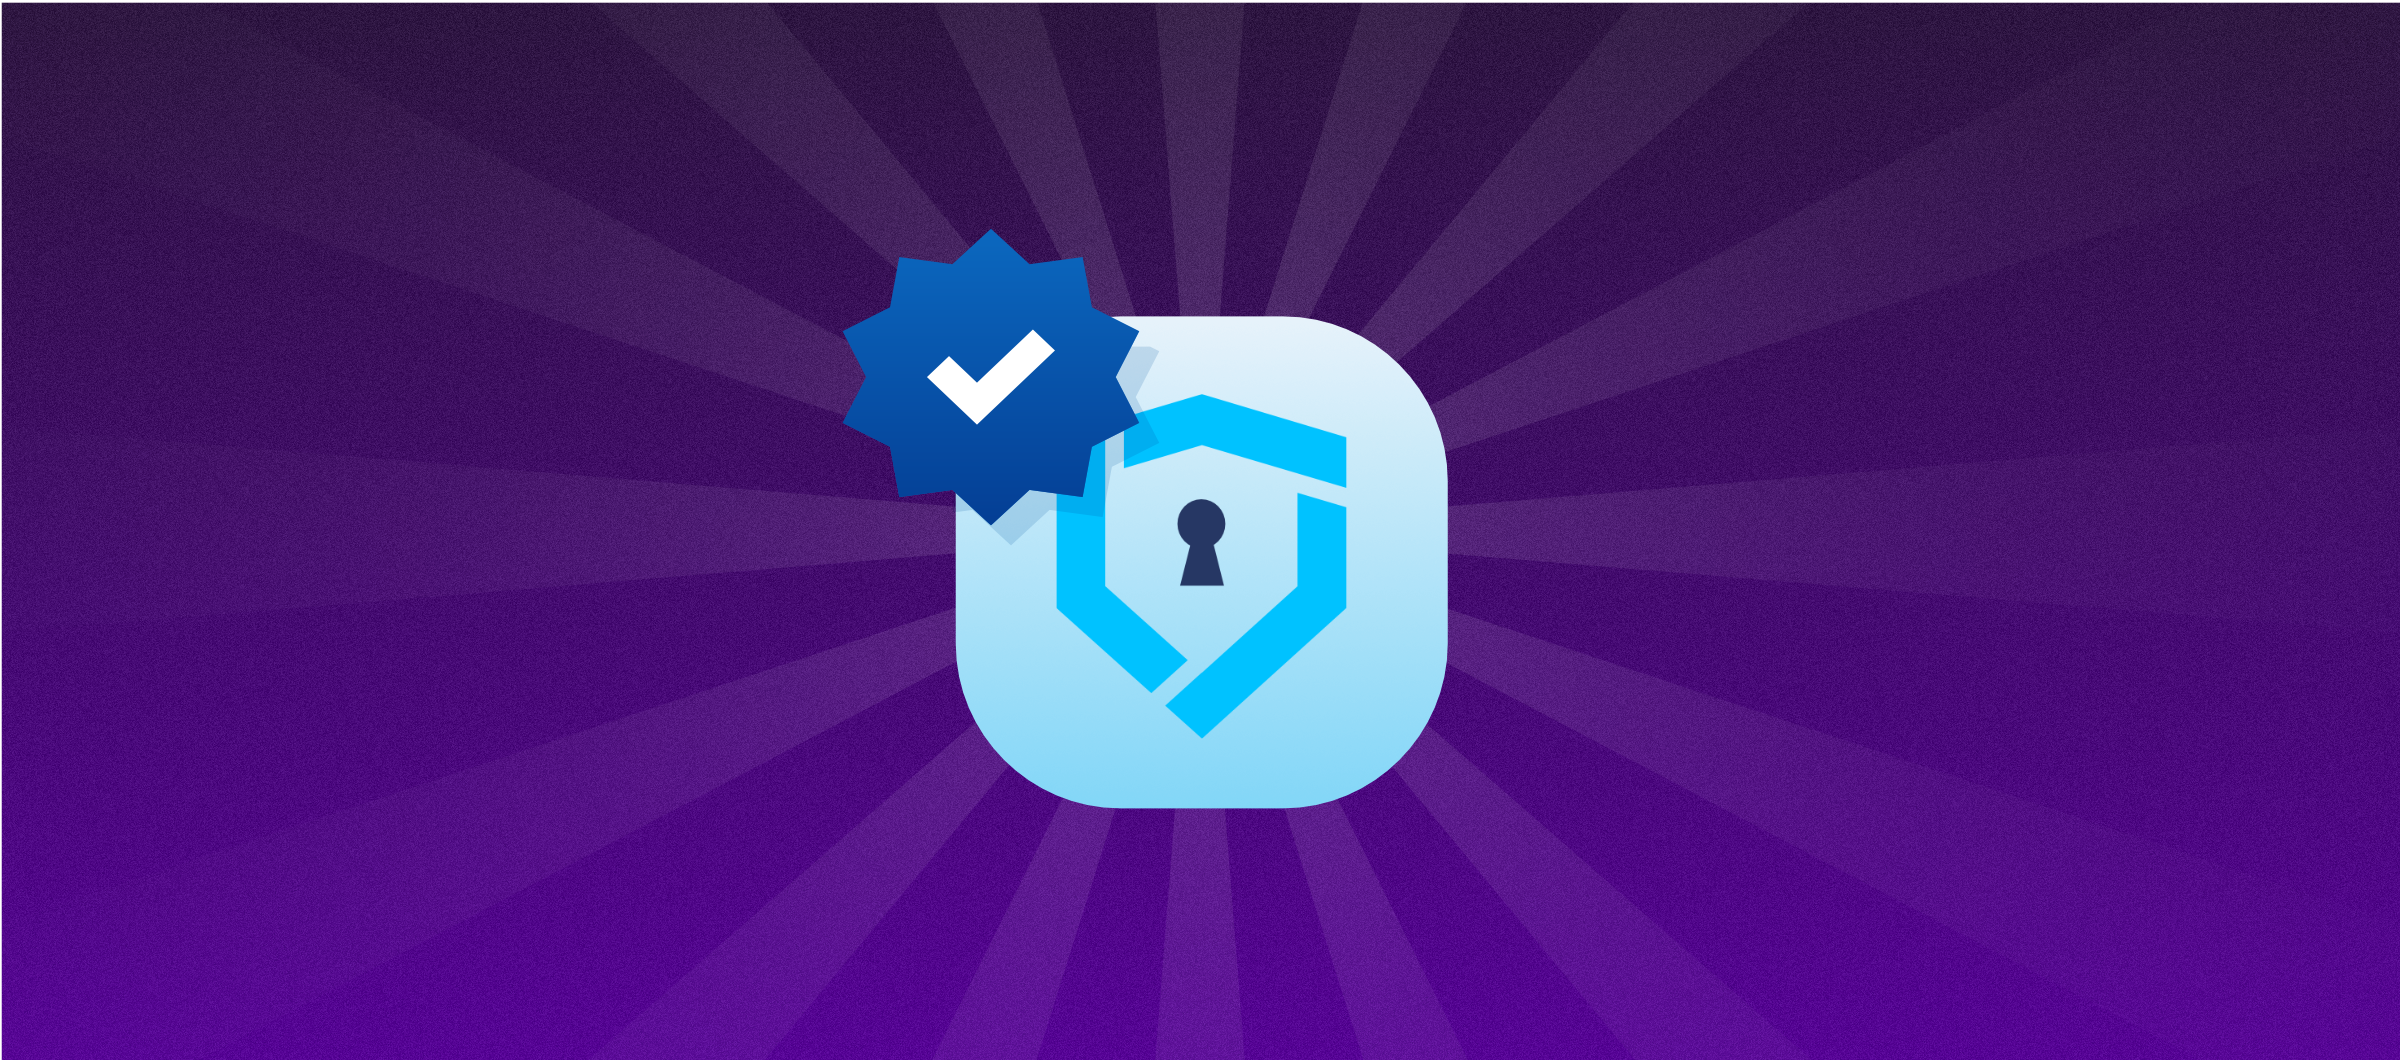 Protect your app from cyberattacks with App-Ray